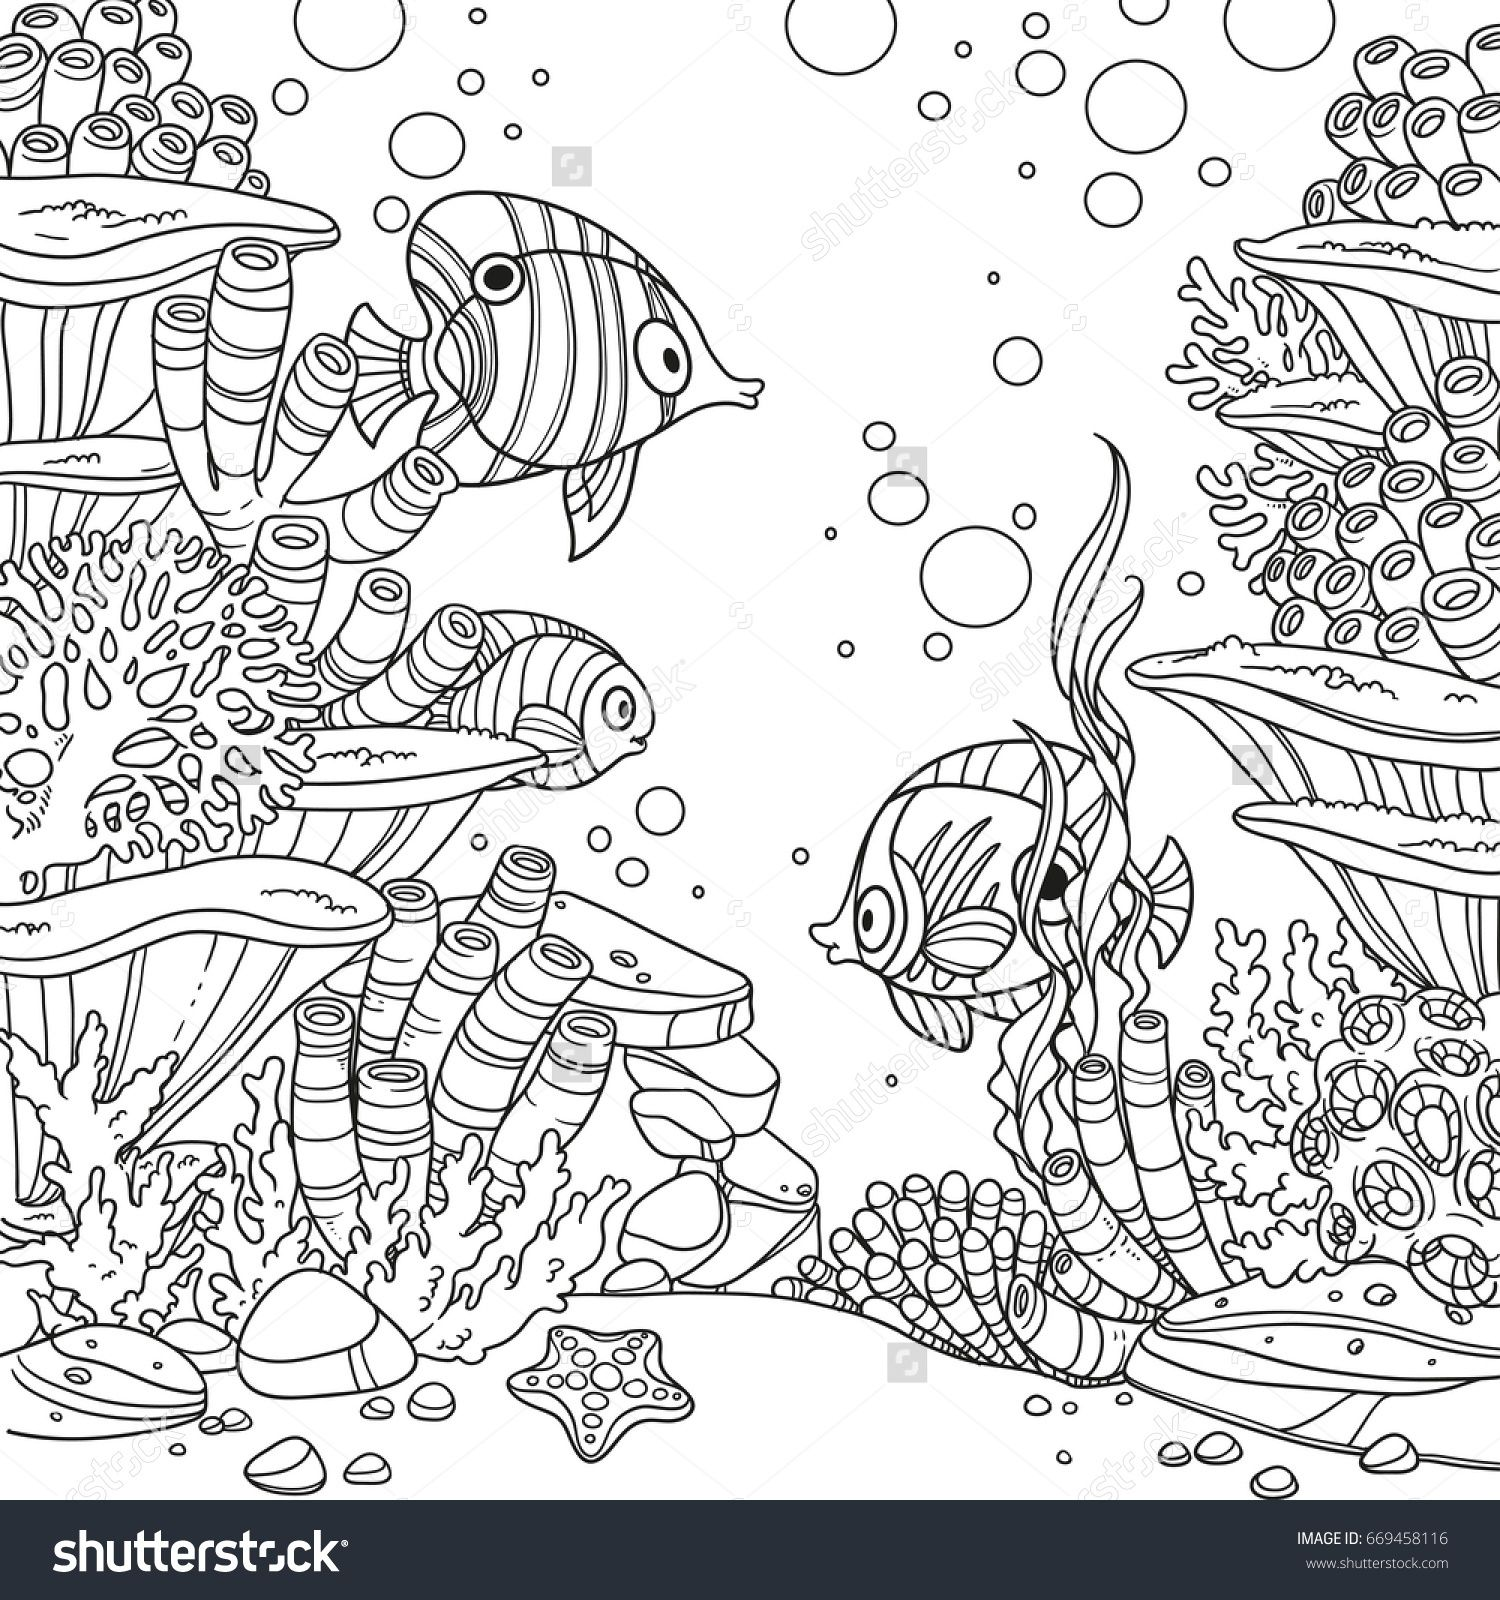 Underwater World With Corals Fish And Anemones Outlined Isolated